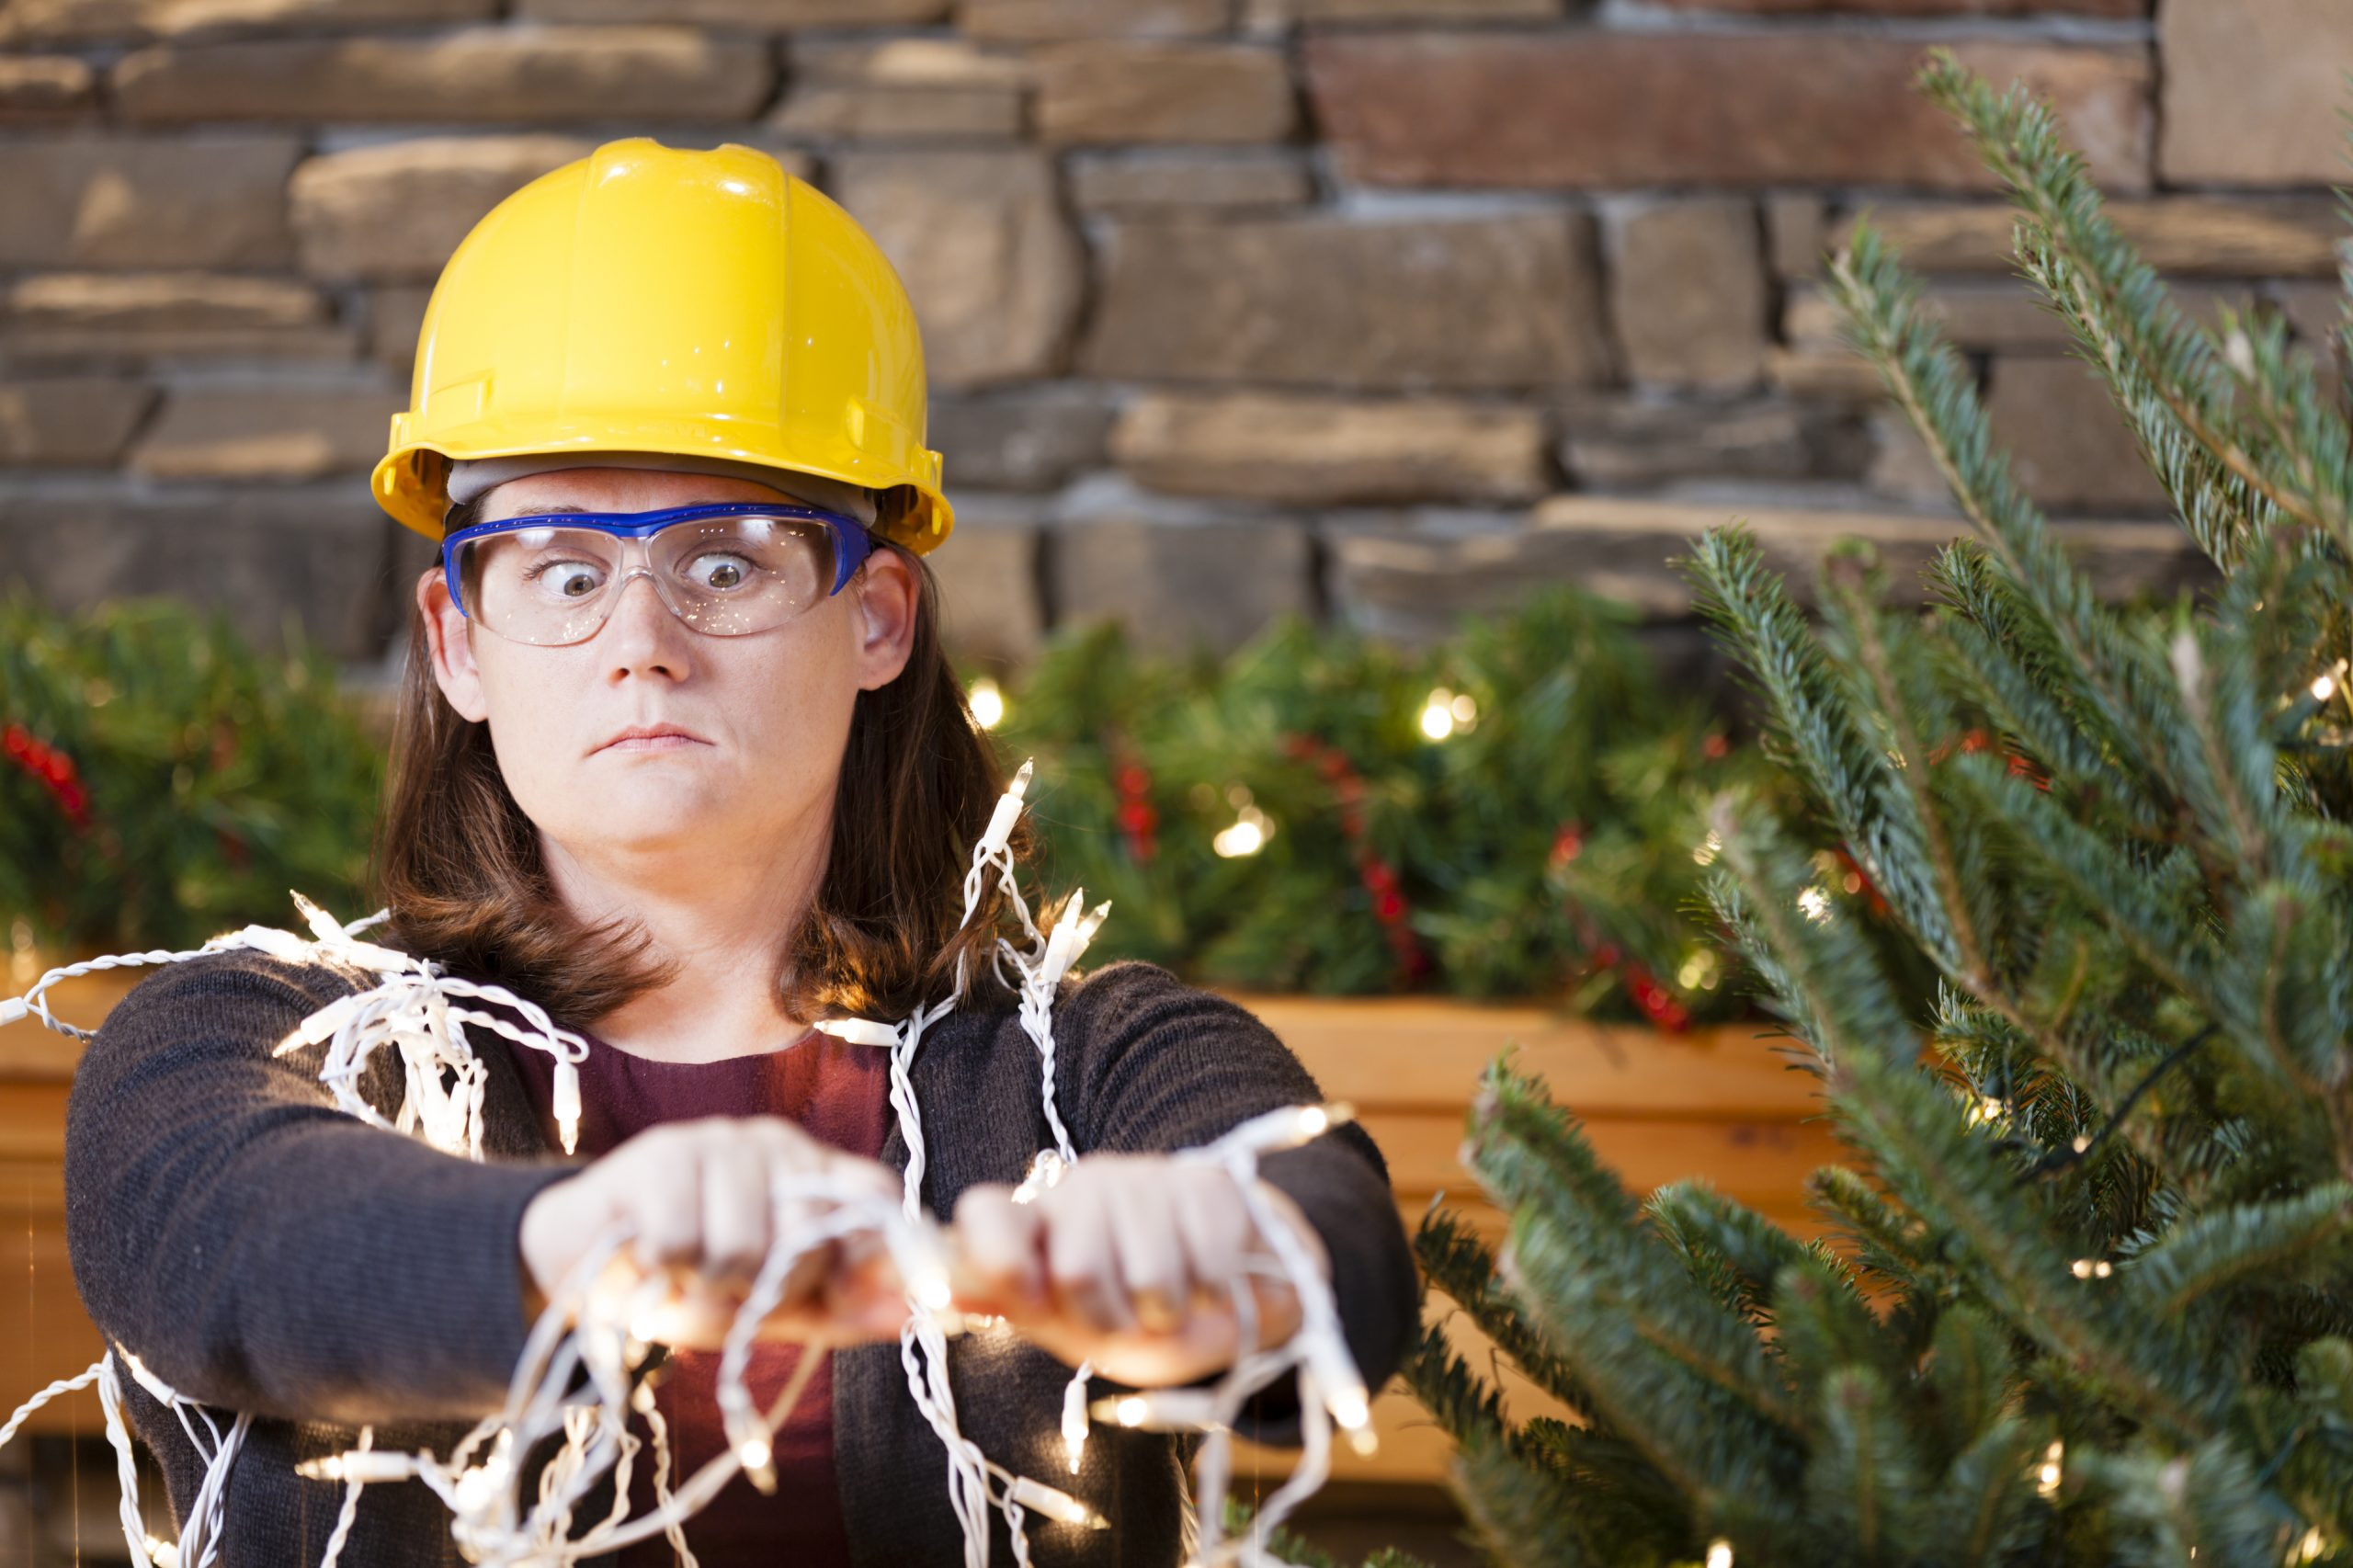 Top 5 Holiday Safety Tips For Shopping